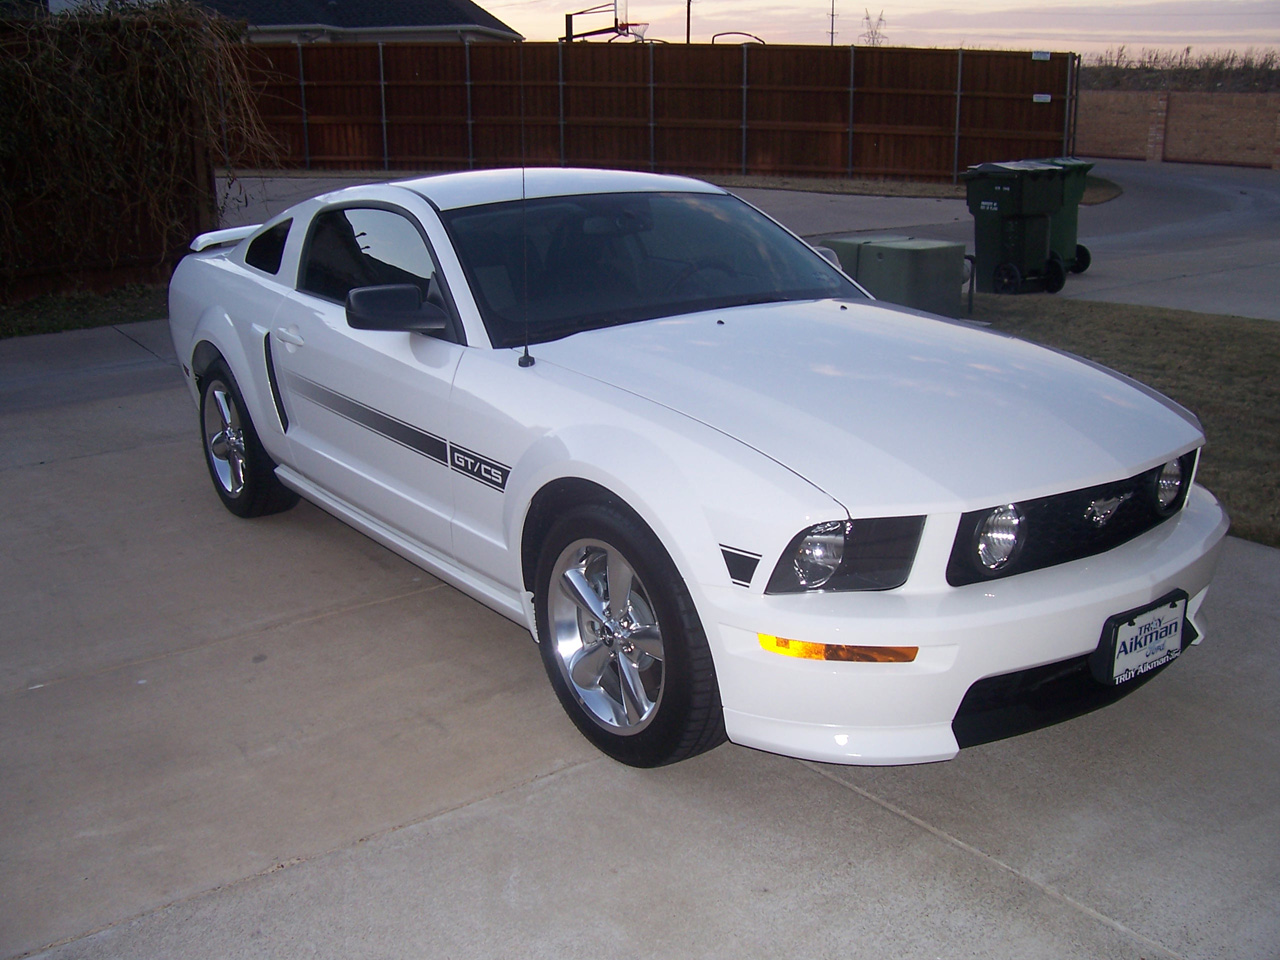 ford mustang photo gallery 2007 gt cs california special. Black Bedroom Furniture Sets. Home Design Ideas